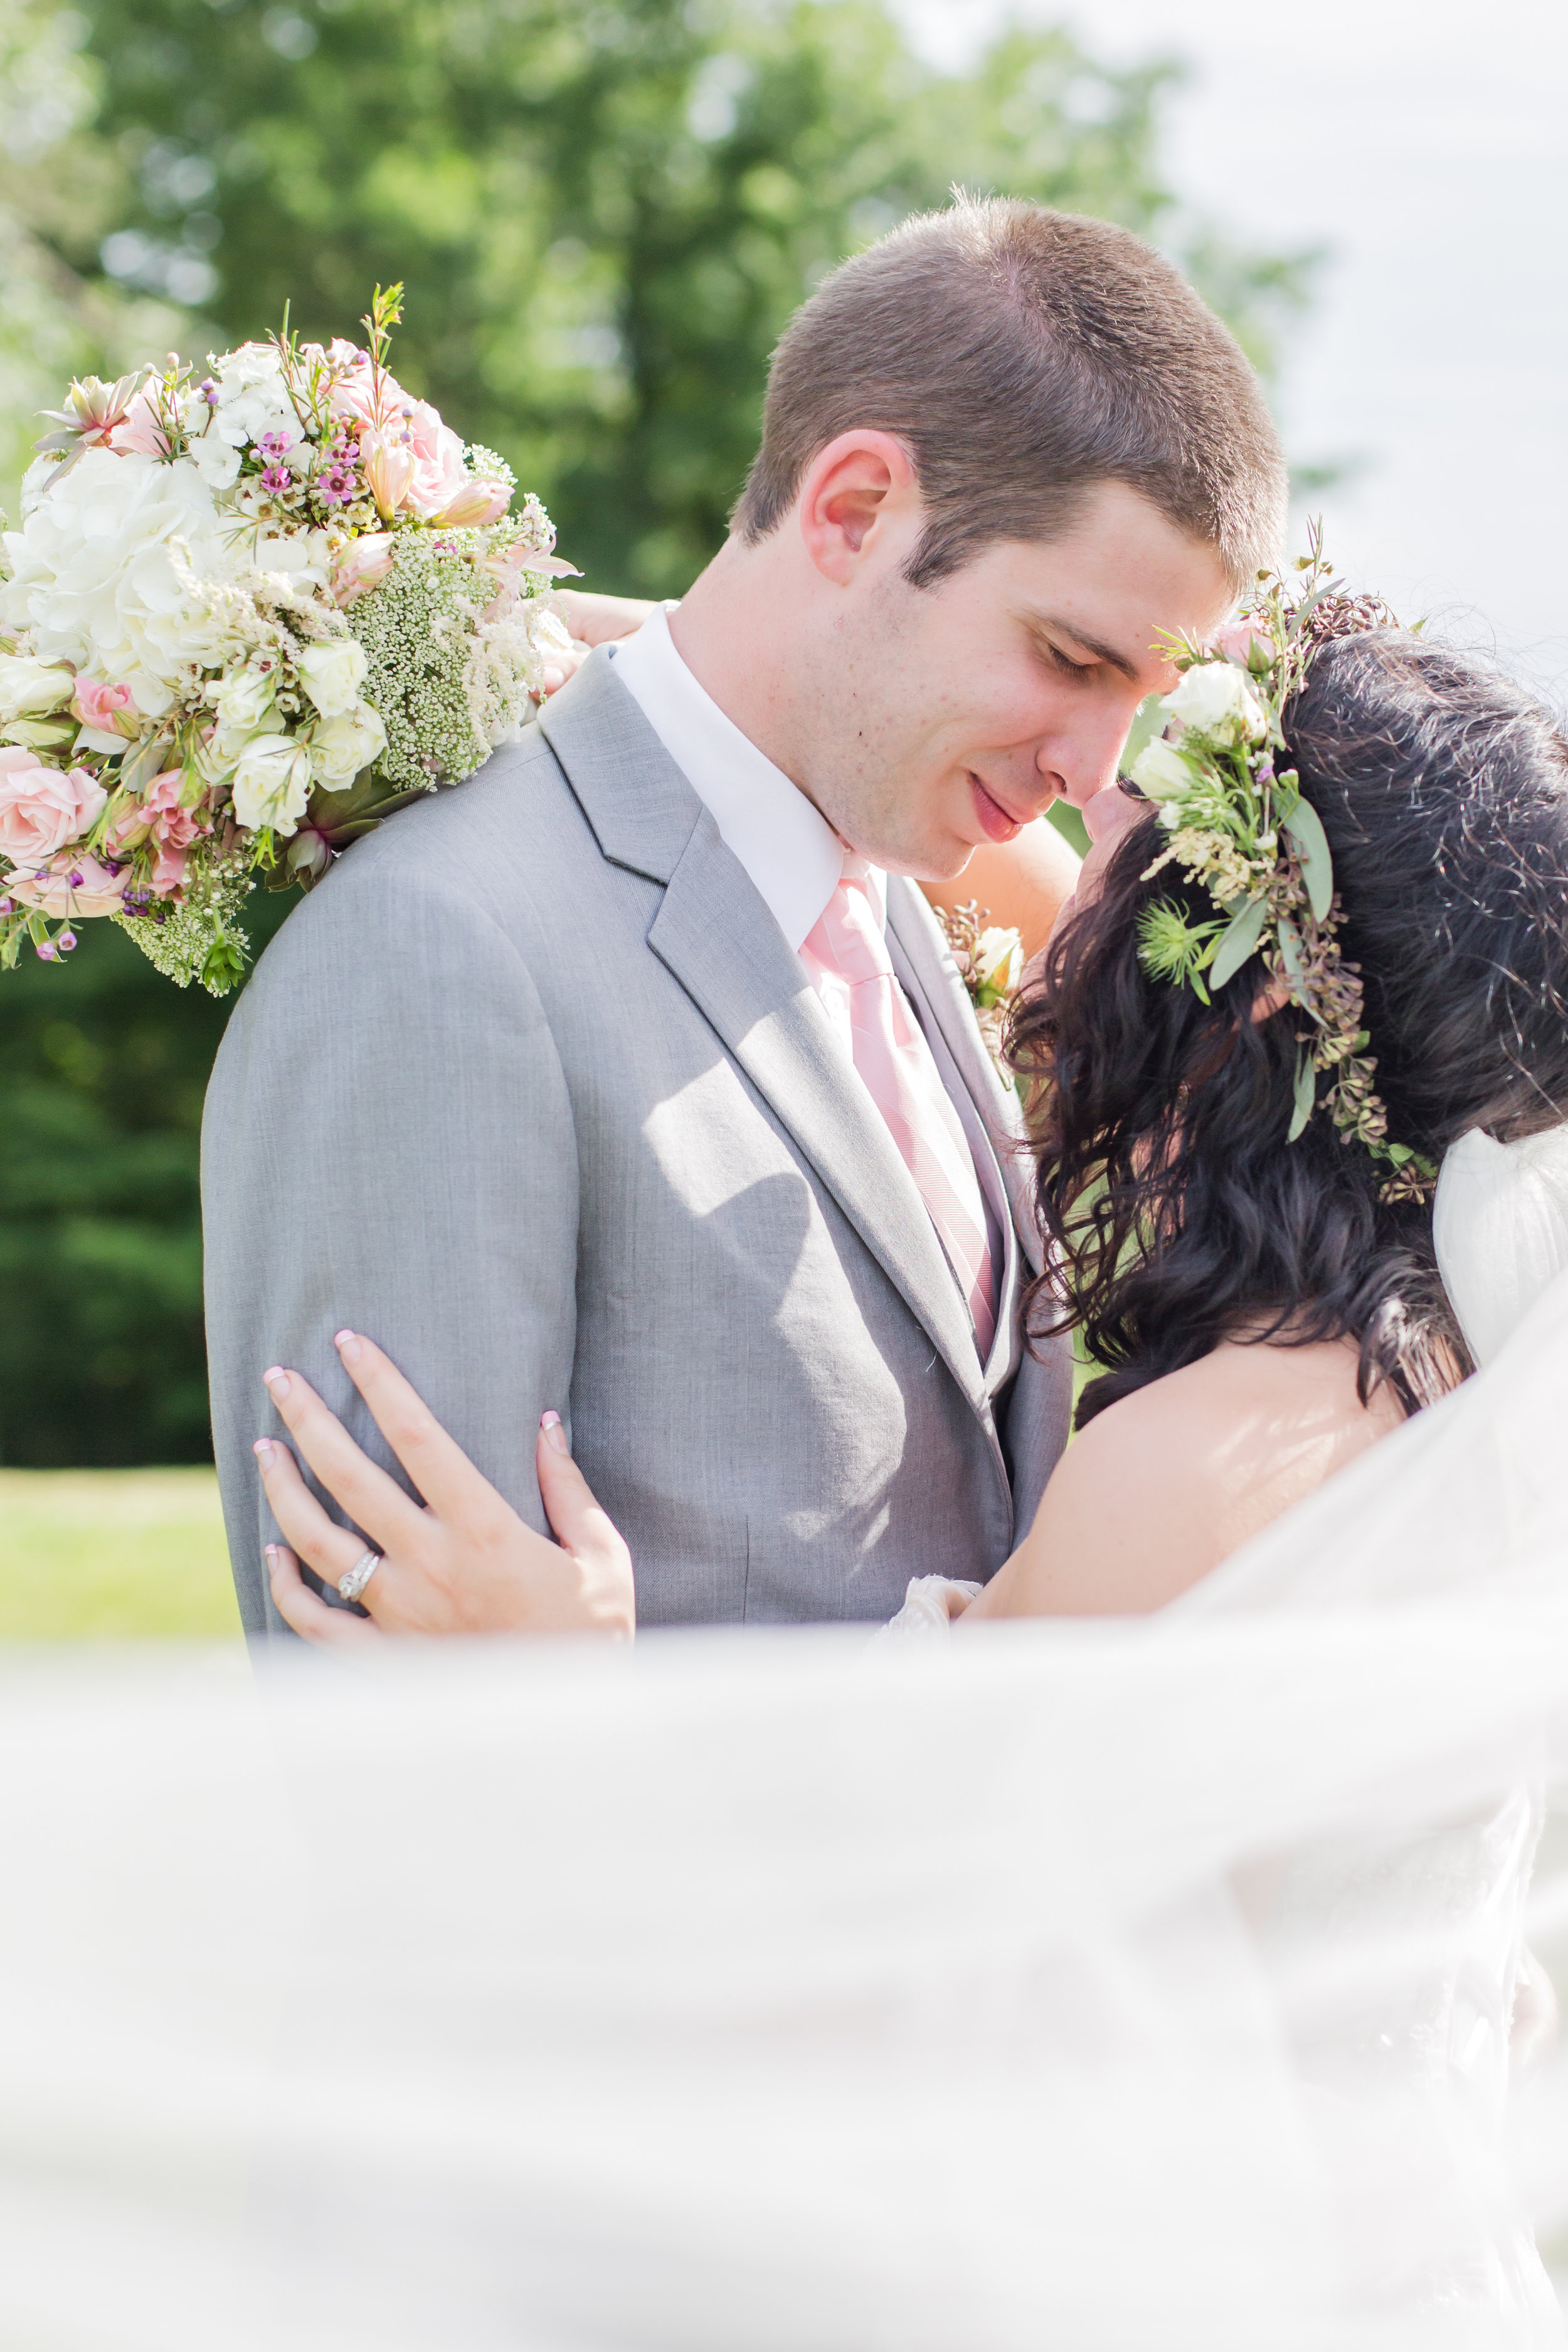 connecticut-wedding-newlywed-portraits-wickham-park-107.jpg